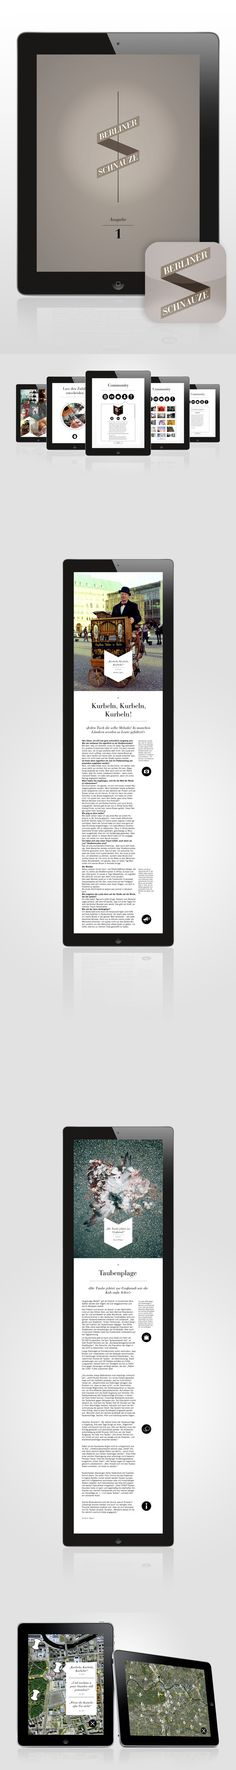 Berliner Schnauze - iPad Magazine by Marcel Bachran, via Behance * * * #ipad #behance #gui